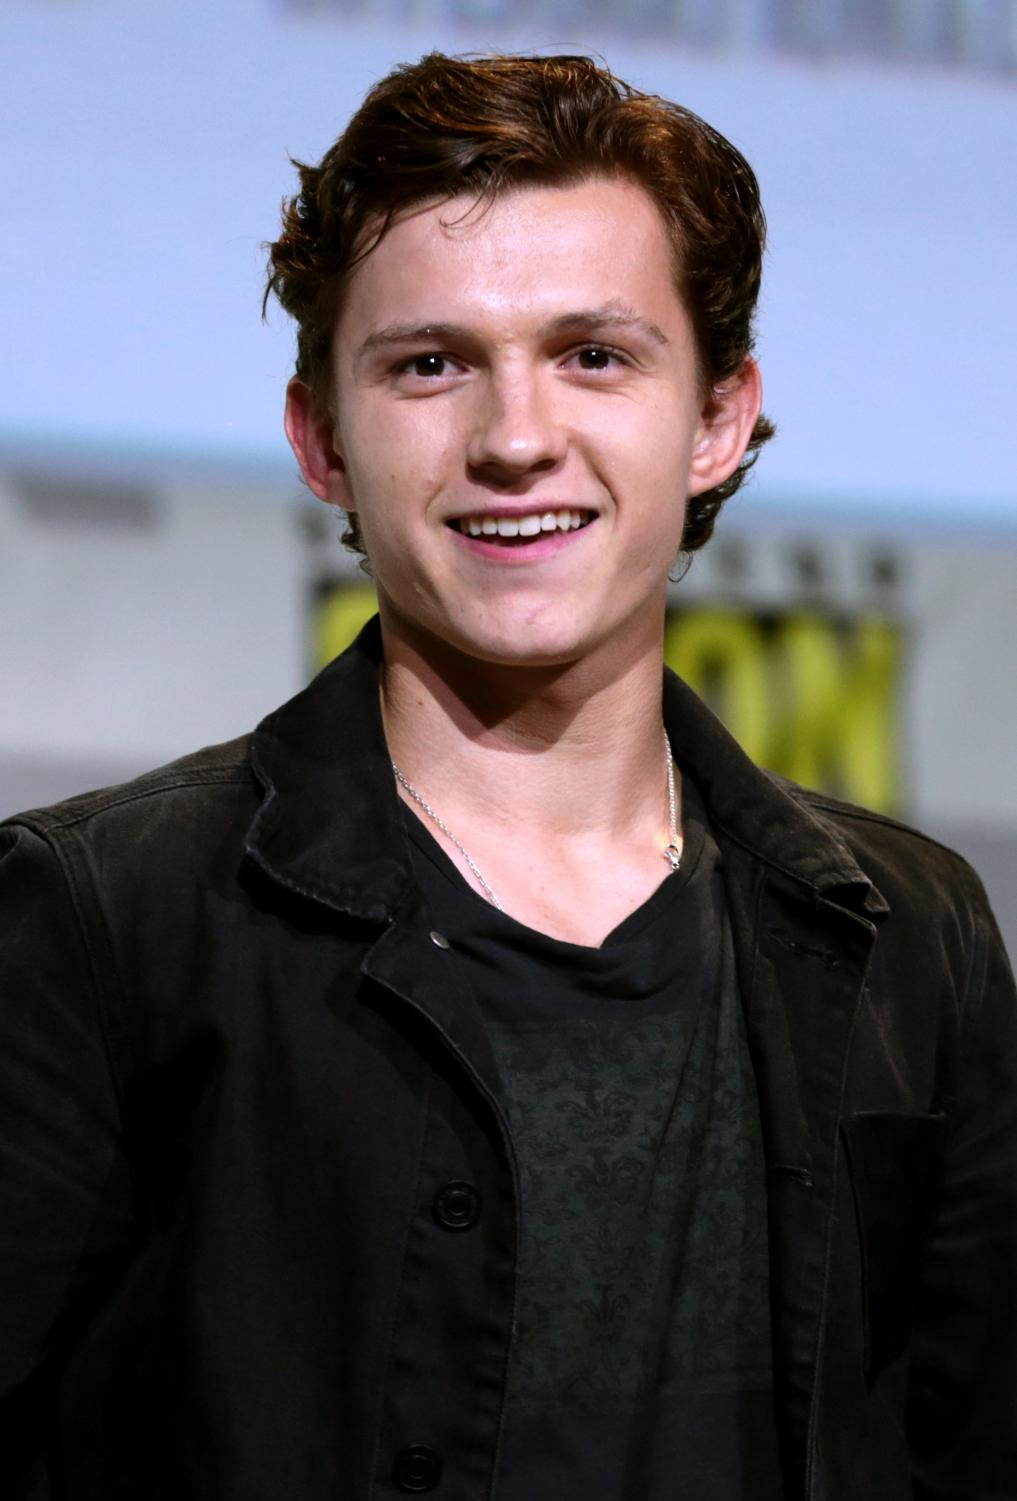 Tom Holland, current Spiderman, at Comic-Con.